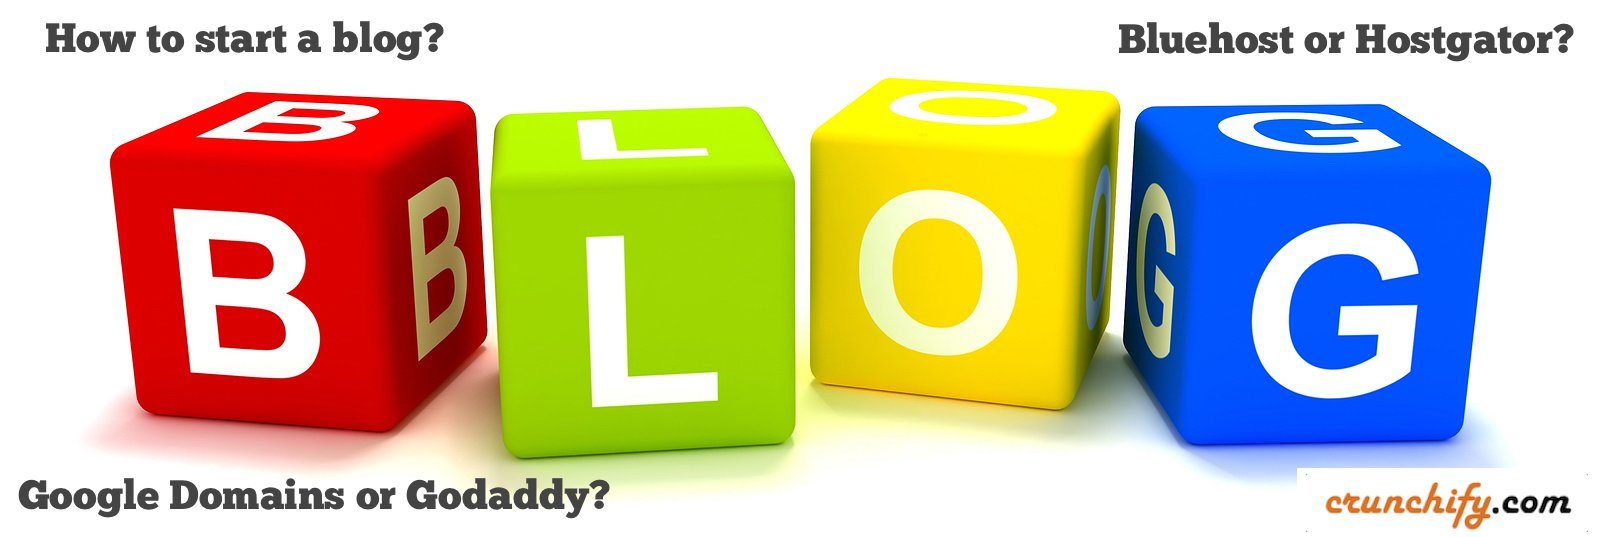 How to Start a blog - Crunchify Tips